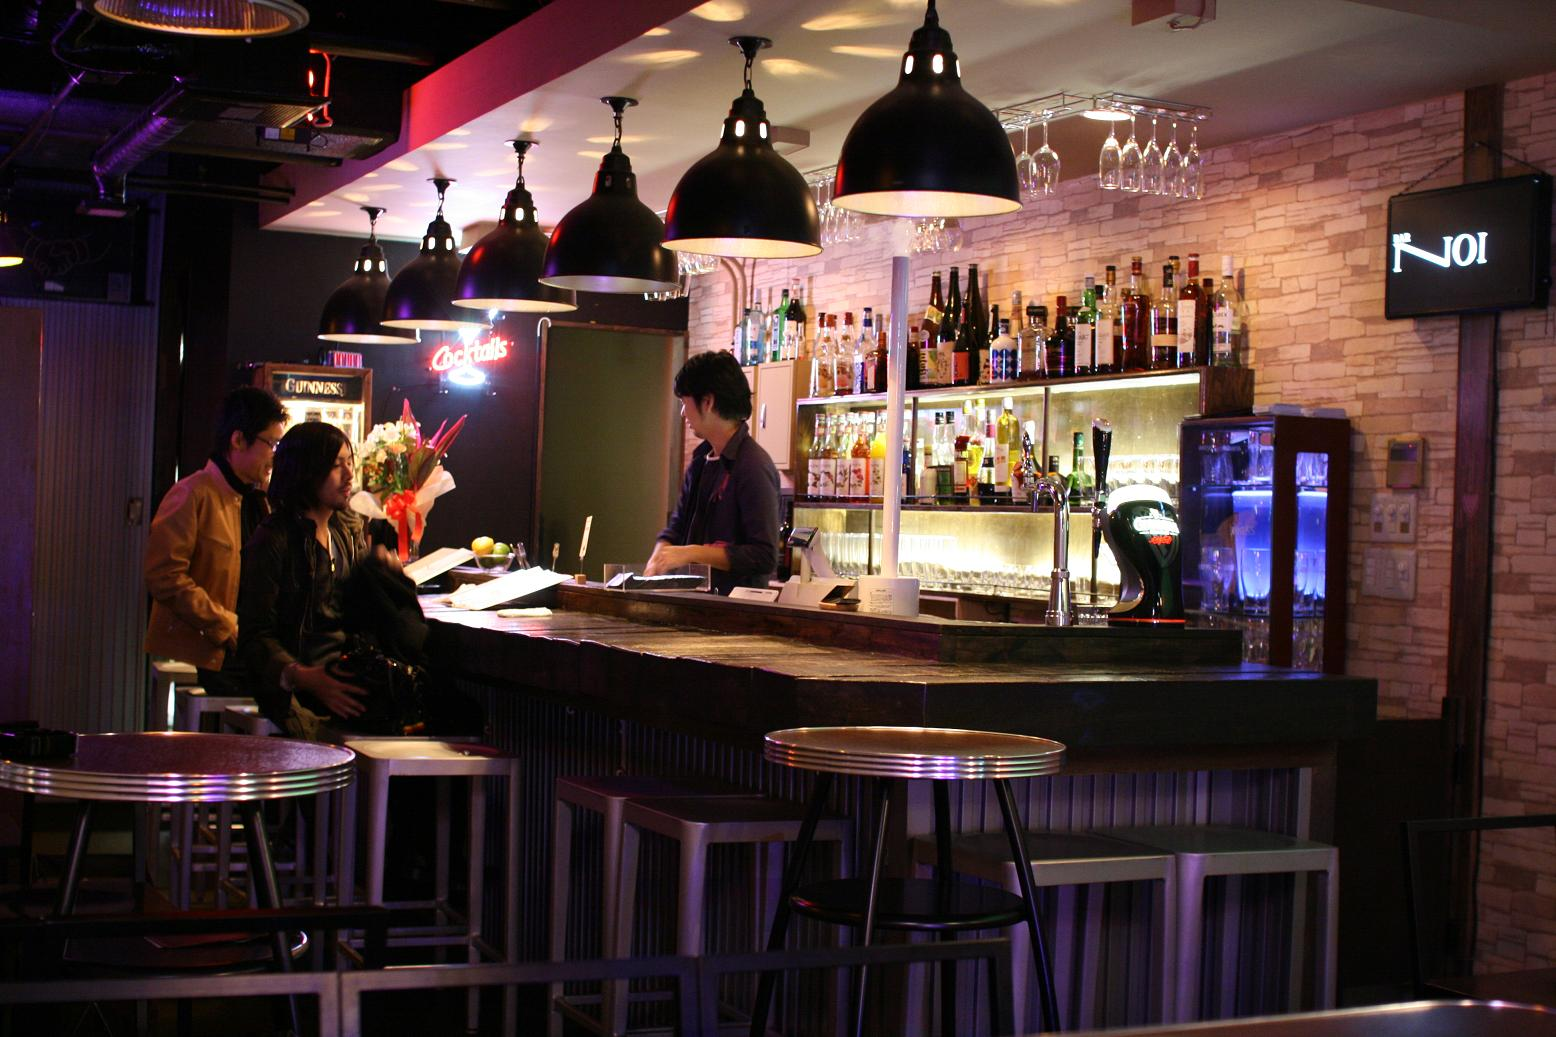 We Are One Japan: So You Own a Bar or Restaurant?